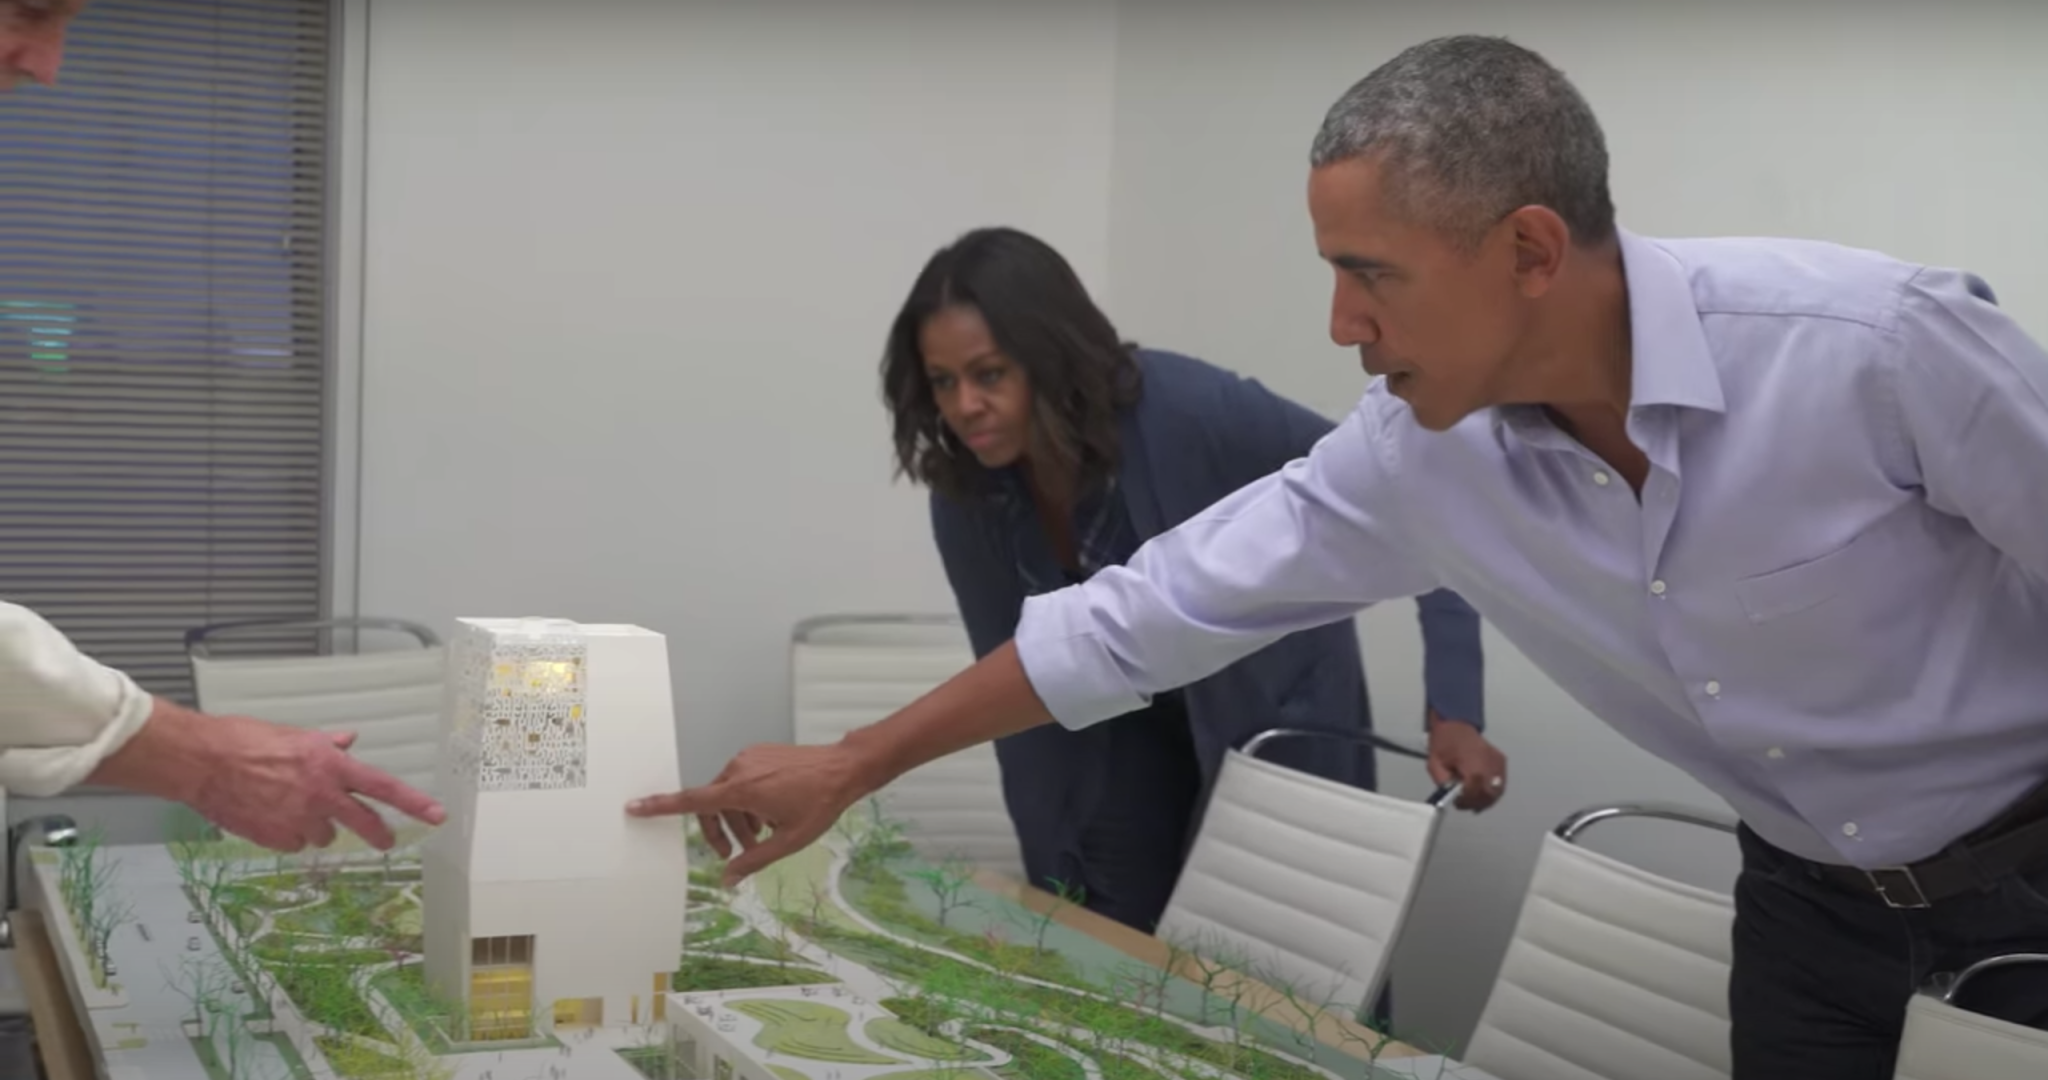 Obama examines the model of the campus of the Obama Presidential Library. (Obama Foundation/Youtube)